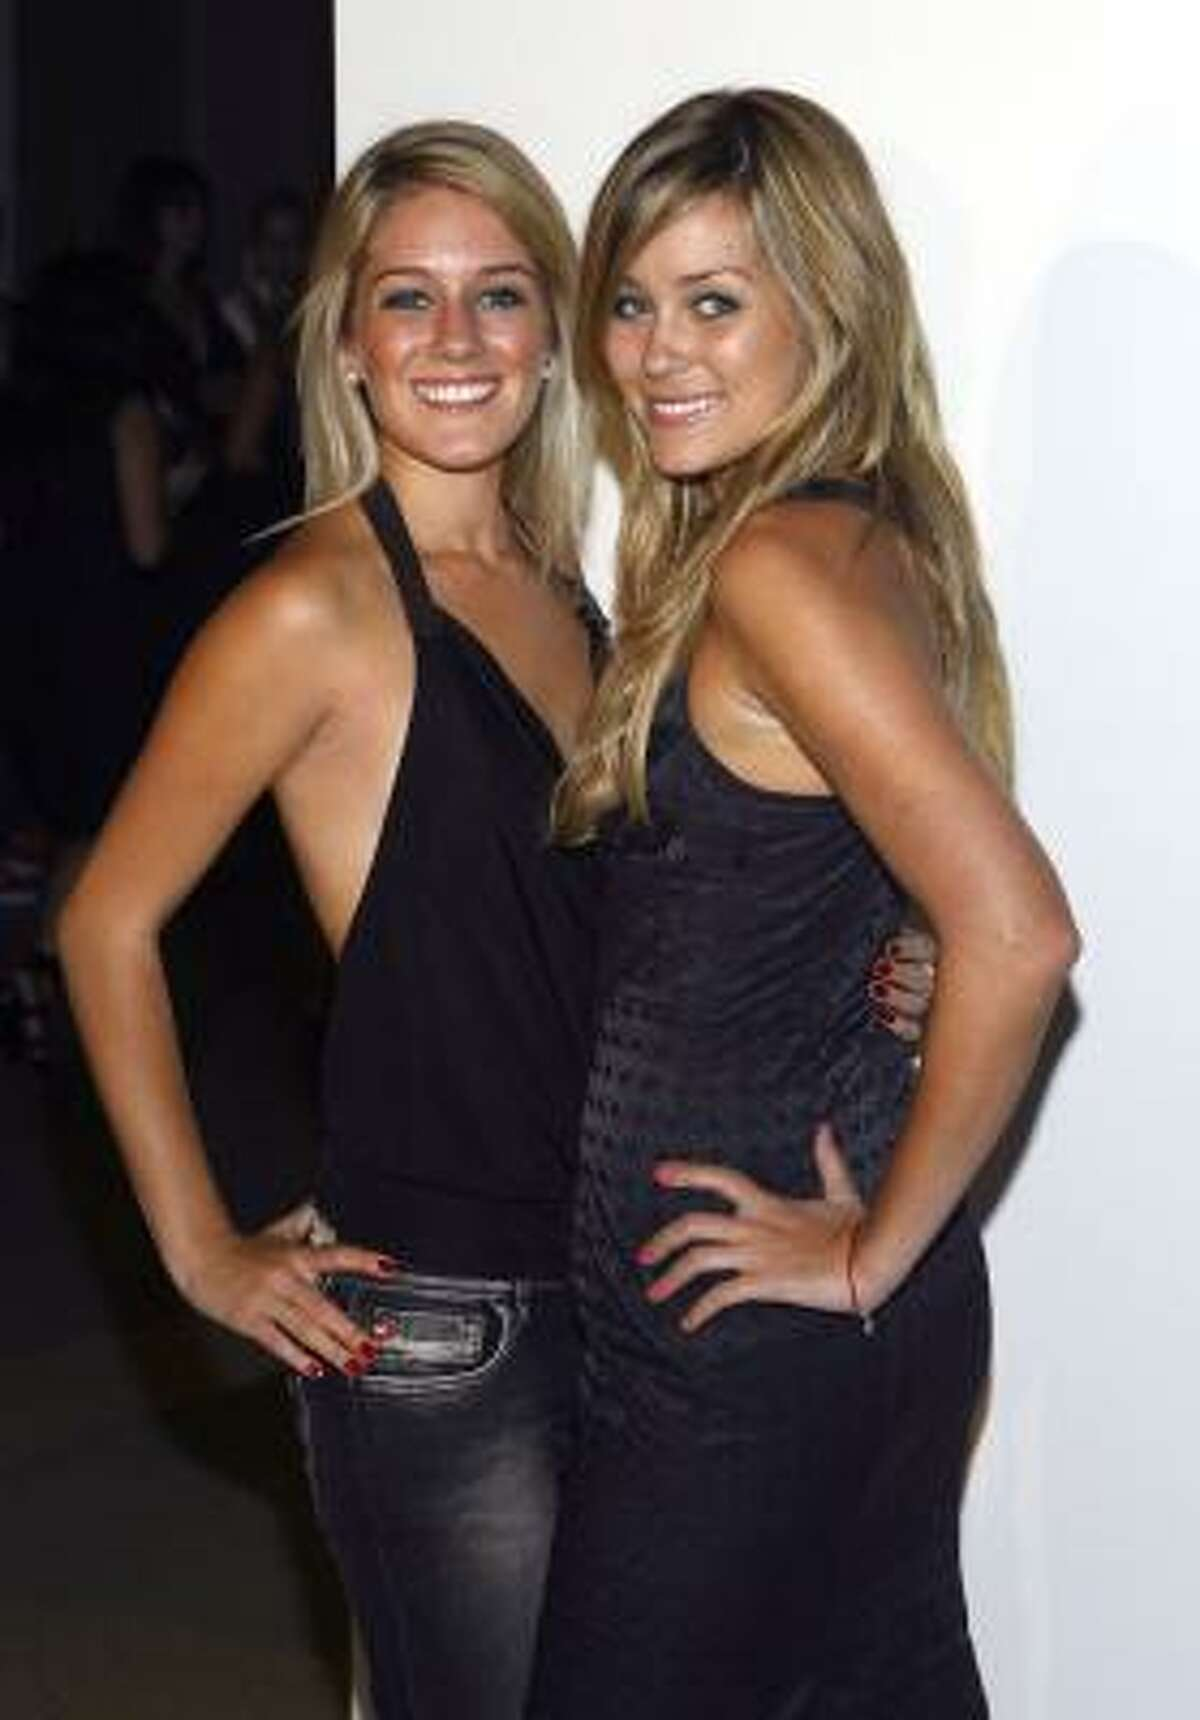 Montag met Lauren Conrad during their first year of college and starred in the reality show because she was rooming with Conrad. But she soon stabbed her bff in the back.